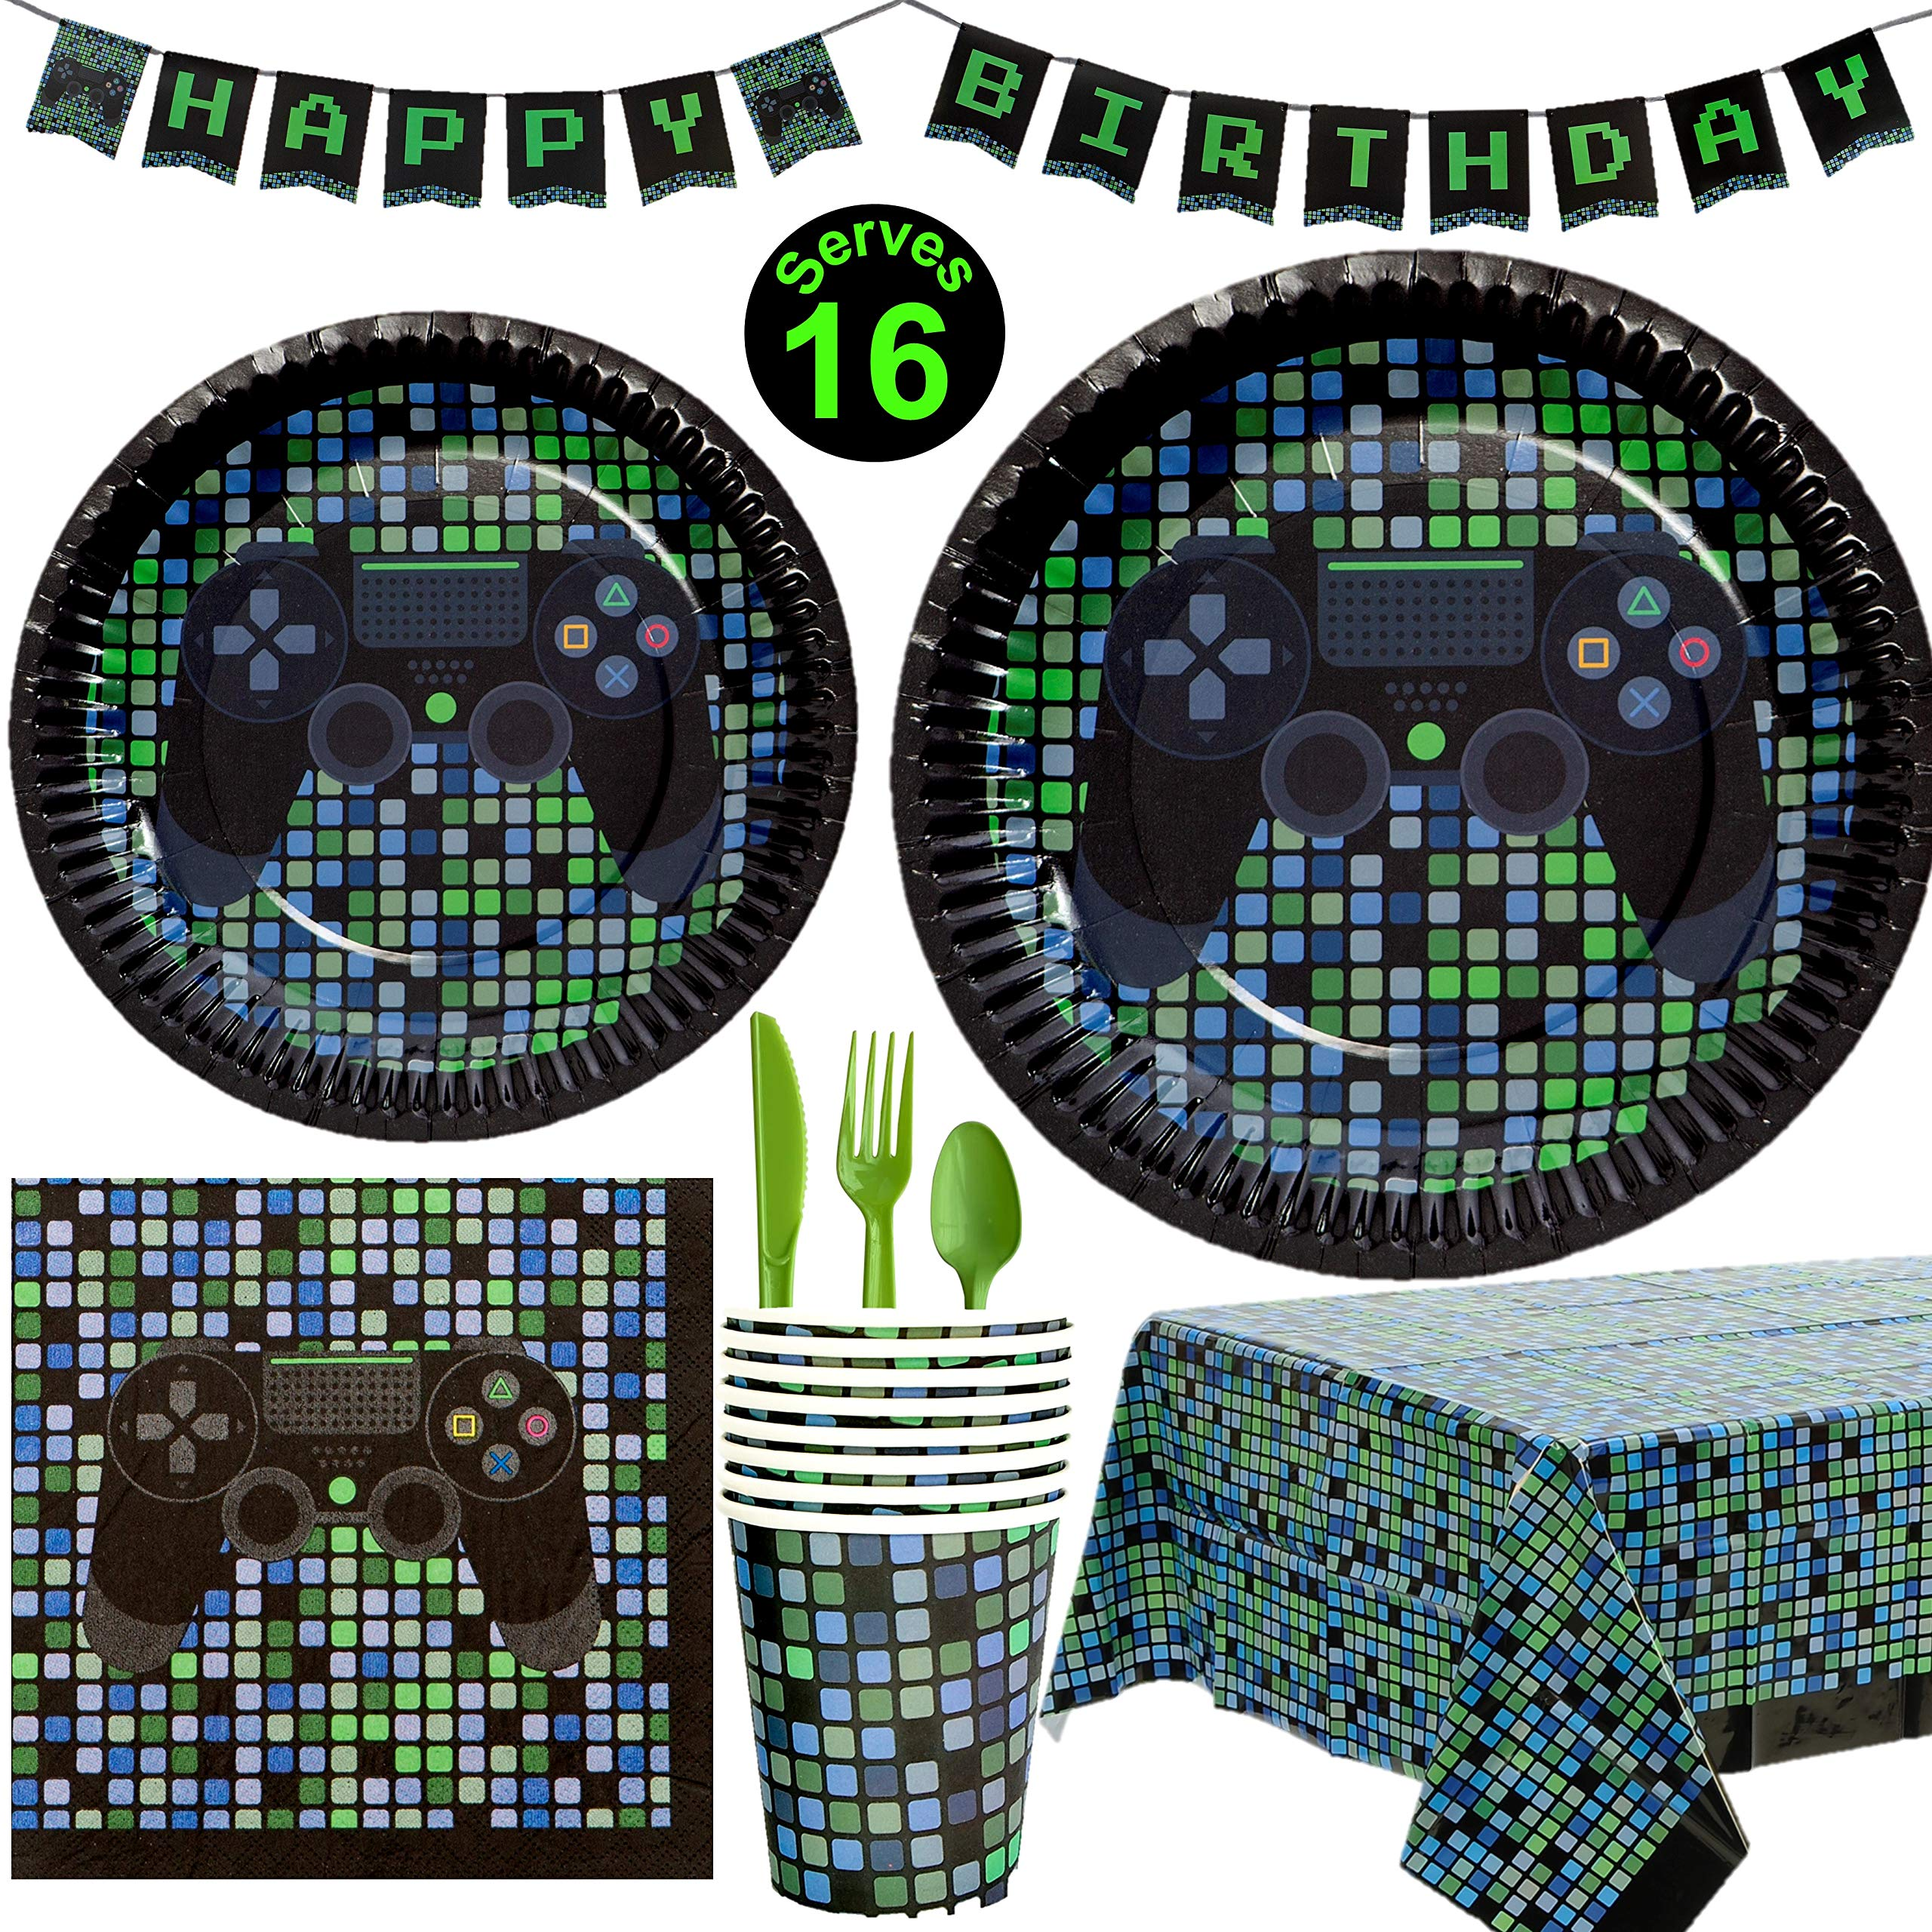 Crafted Pack Video Game Party Supplies - Plates, Cups, Napkins, Happy Birthday Banner, Table Cover, Utensils Pack - 16 Guests - Controller Gamming Themed Birthday Decorations for Boys by Crafted Pack